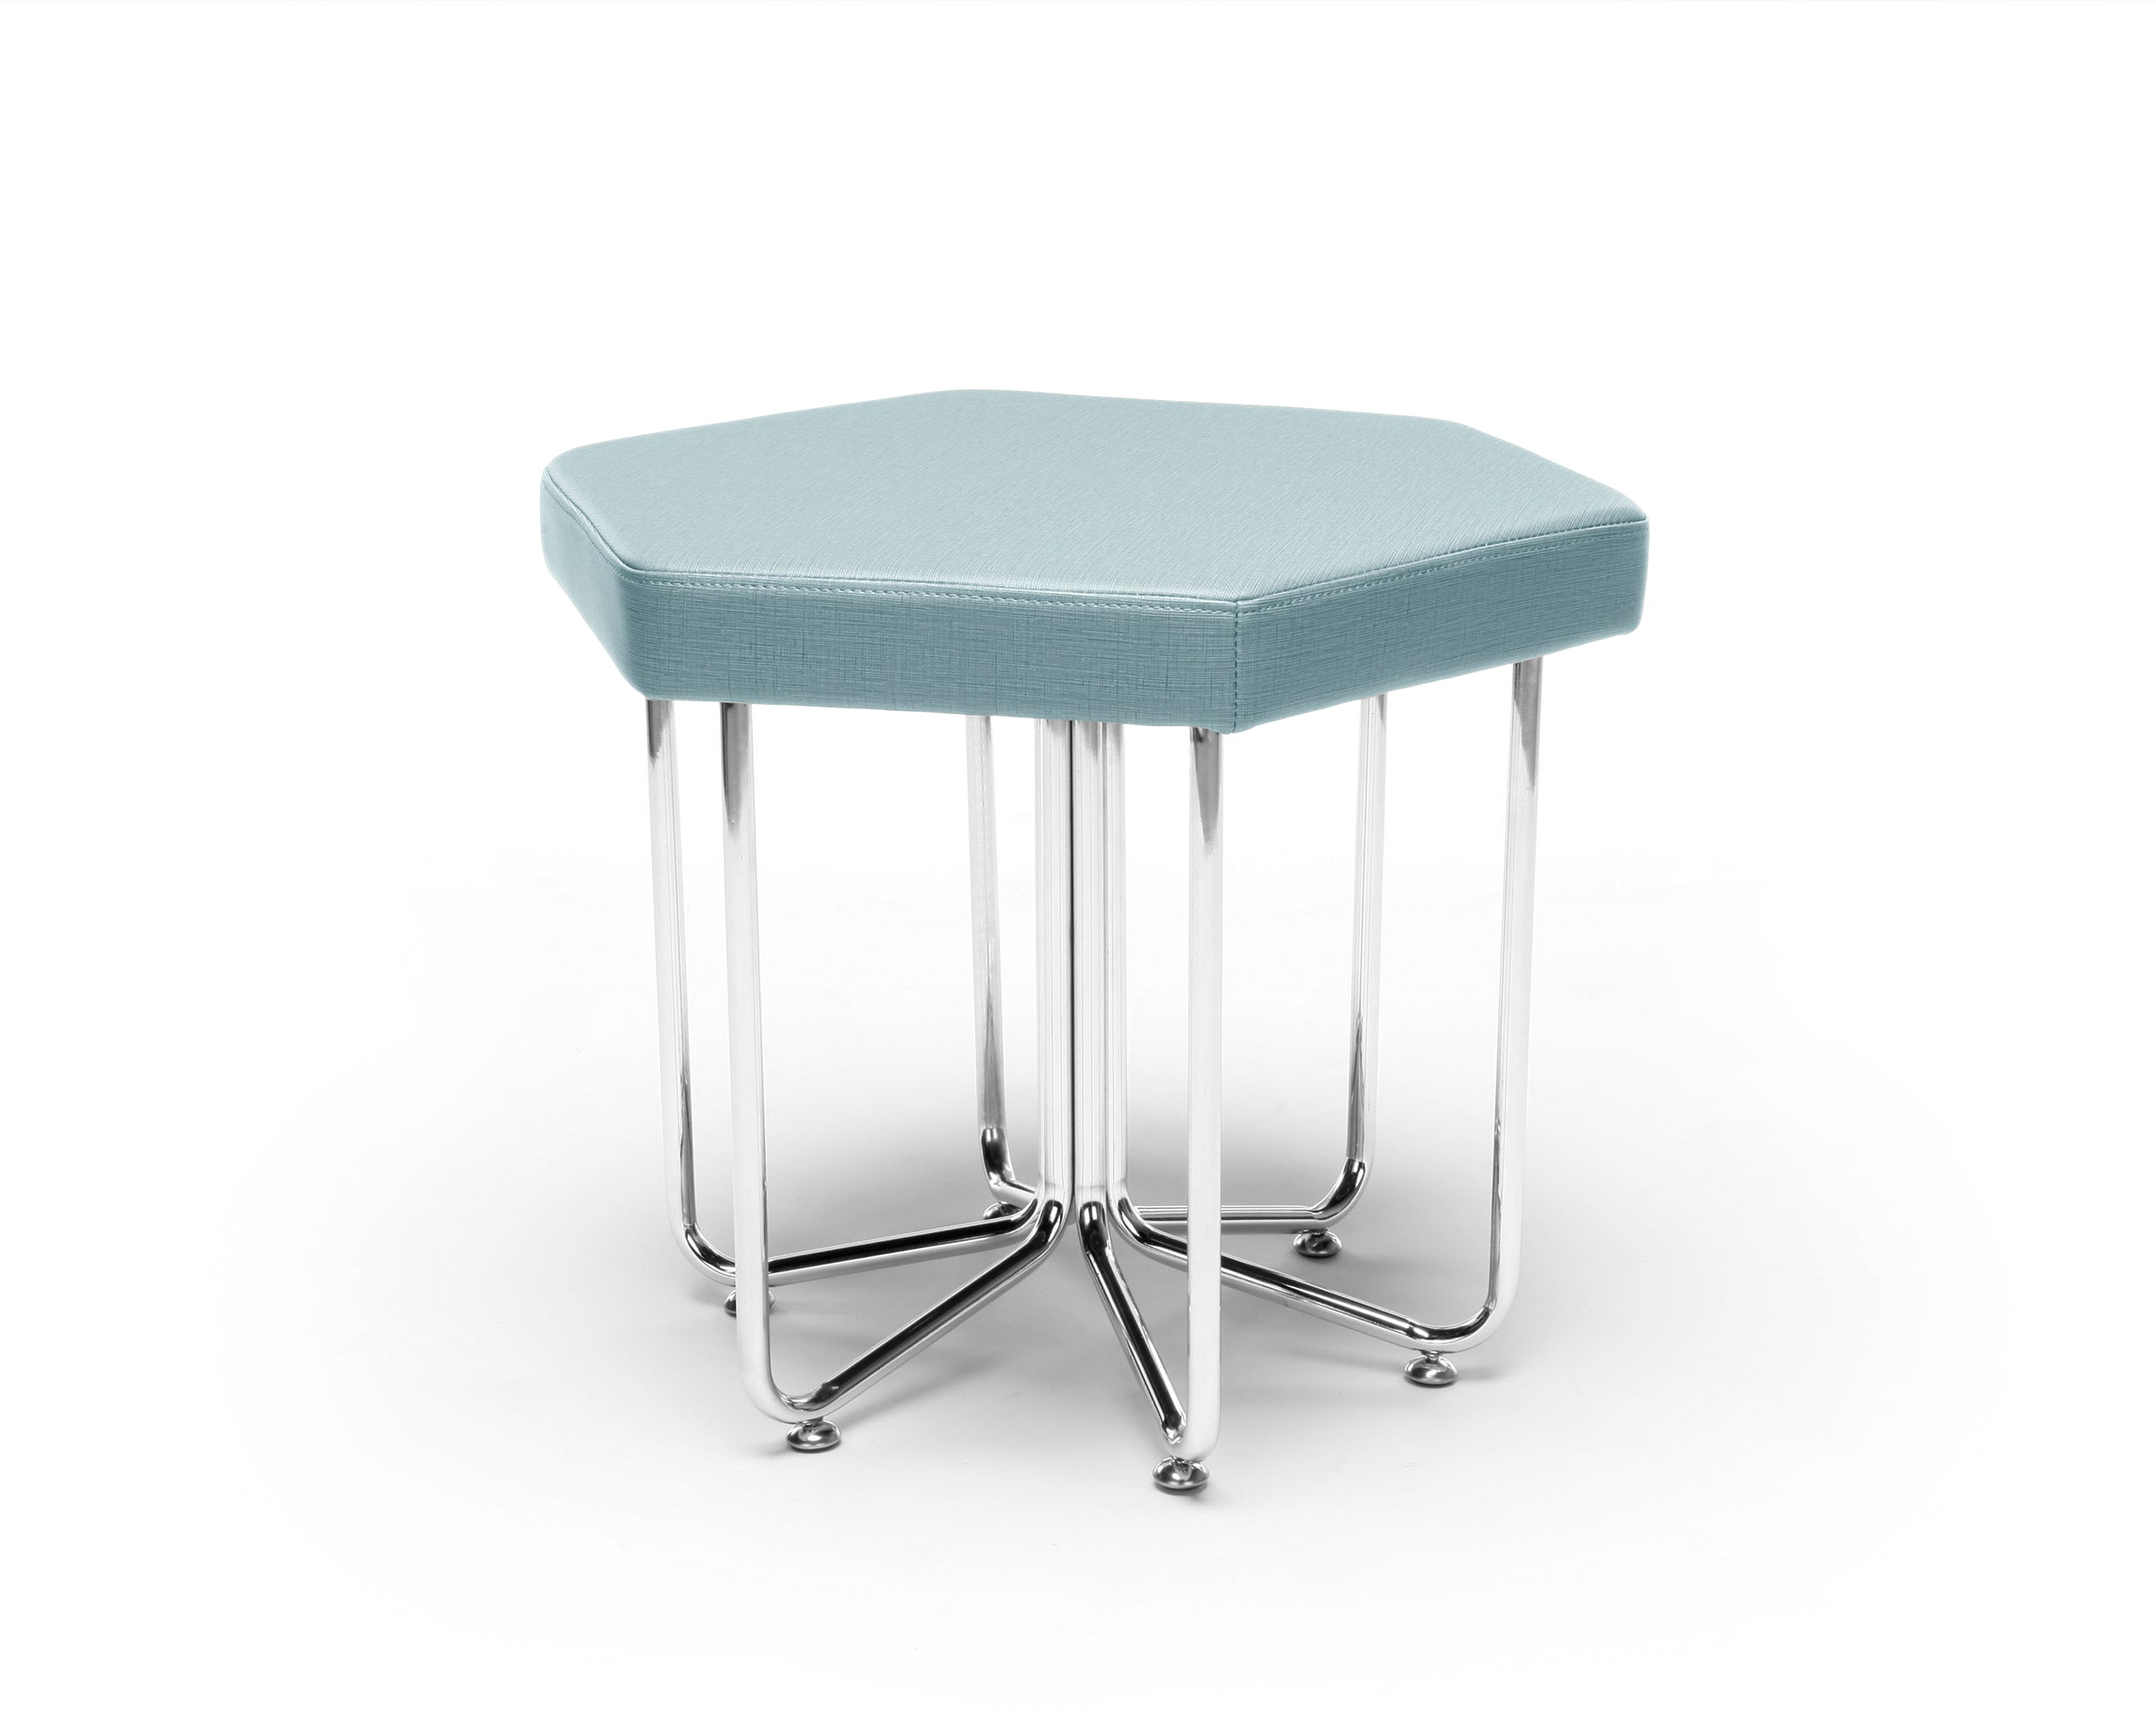 Ofminc Model 66 Hex Series Chrome Frame Stool